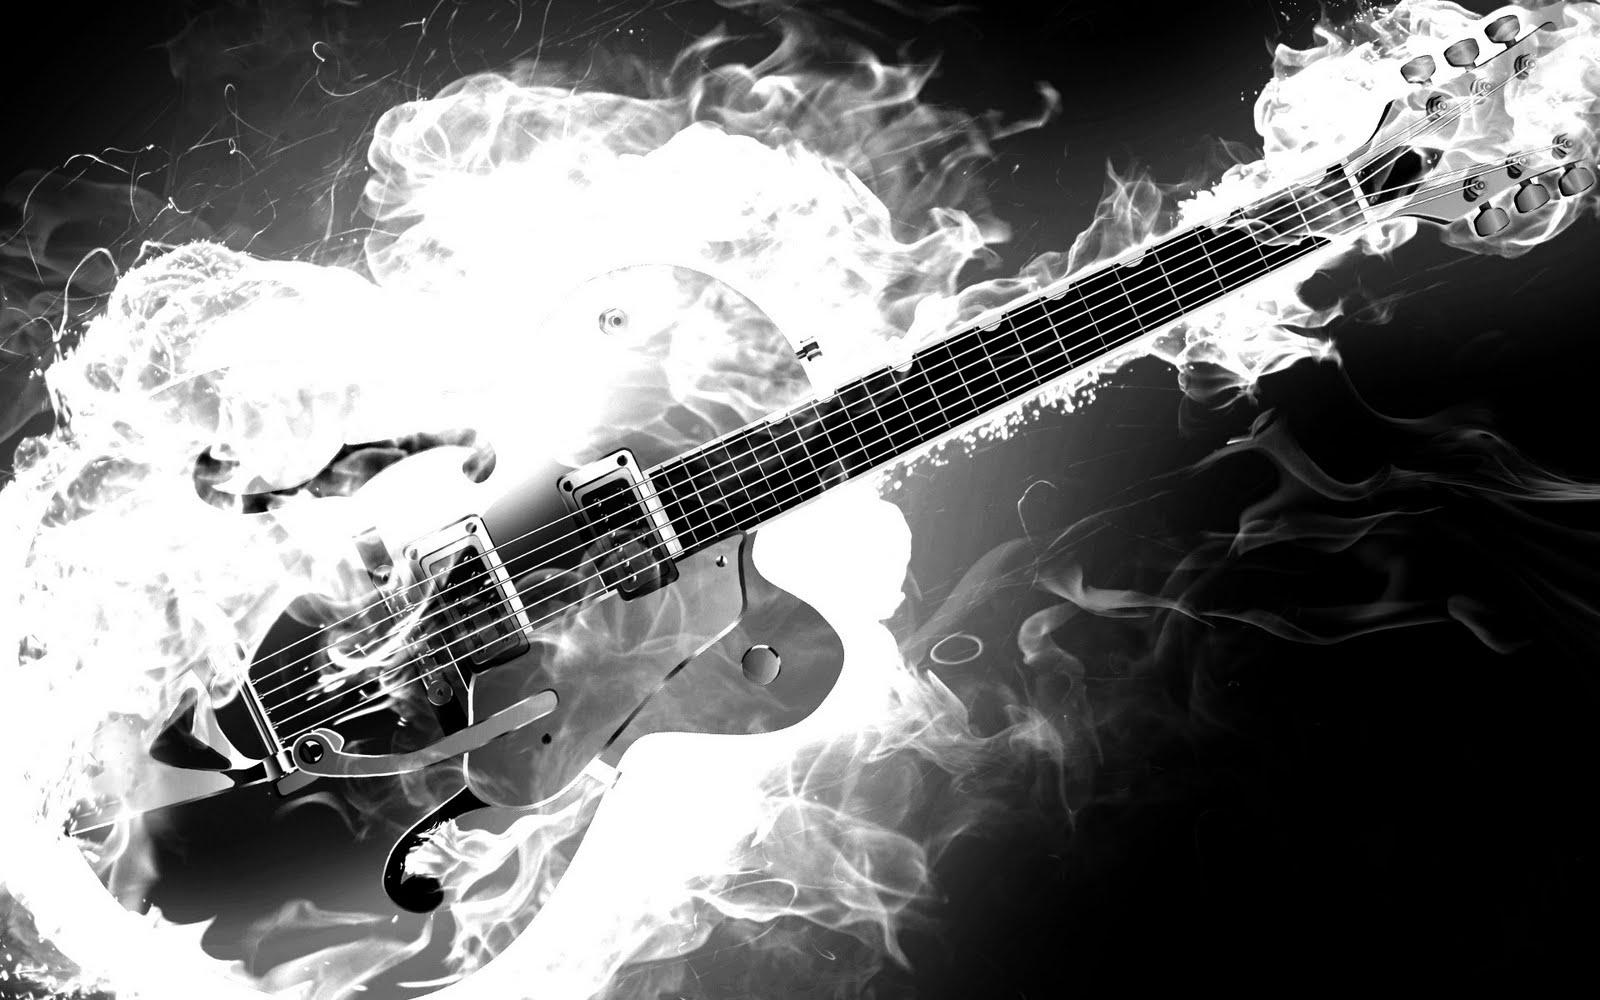 Flaming Guitars Digital Art Hd Wallpaper: Awesome Guitar Backgrounds